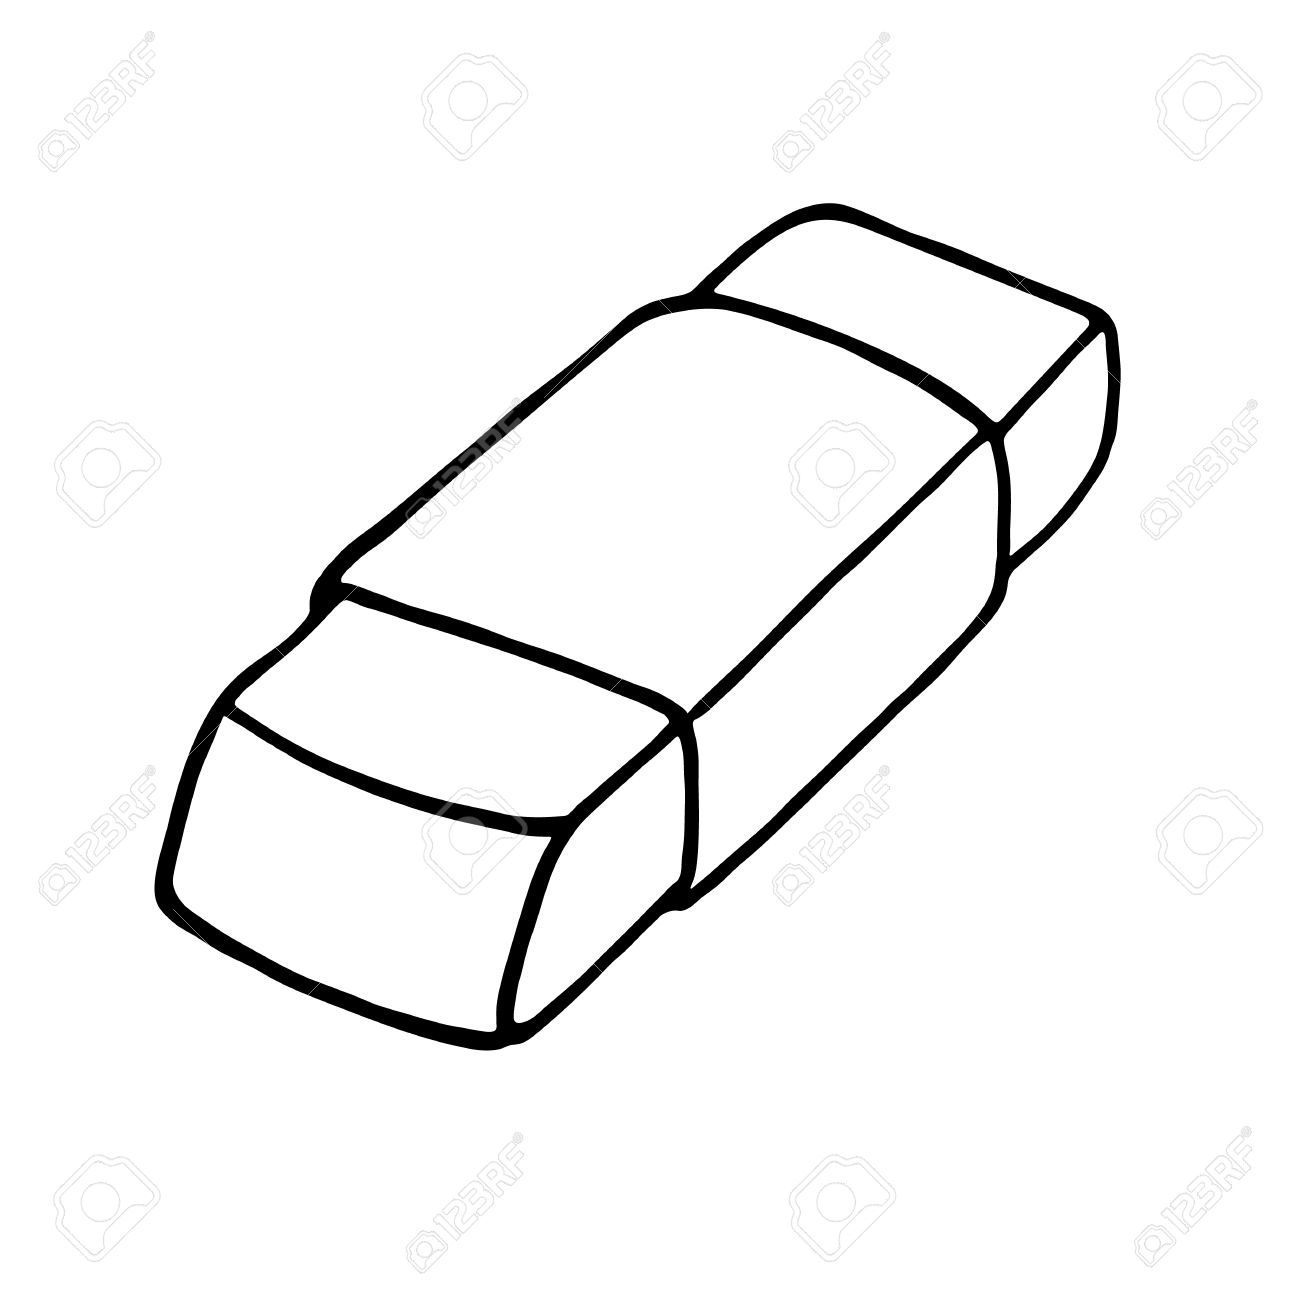 Eraser clipart. Black and white letters